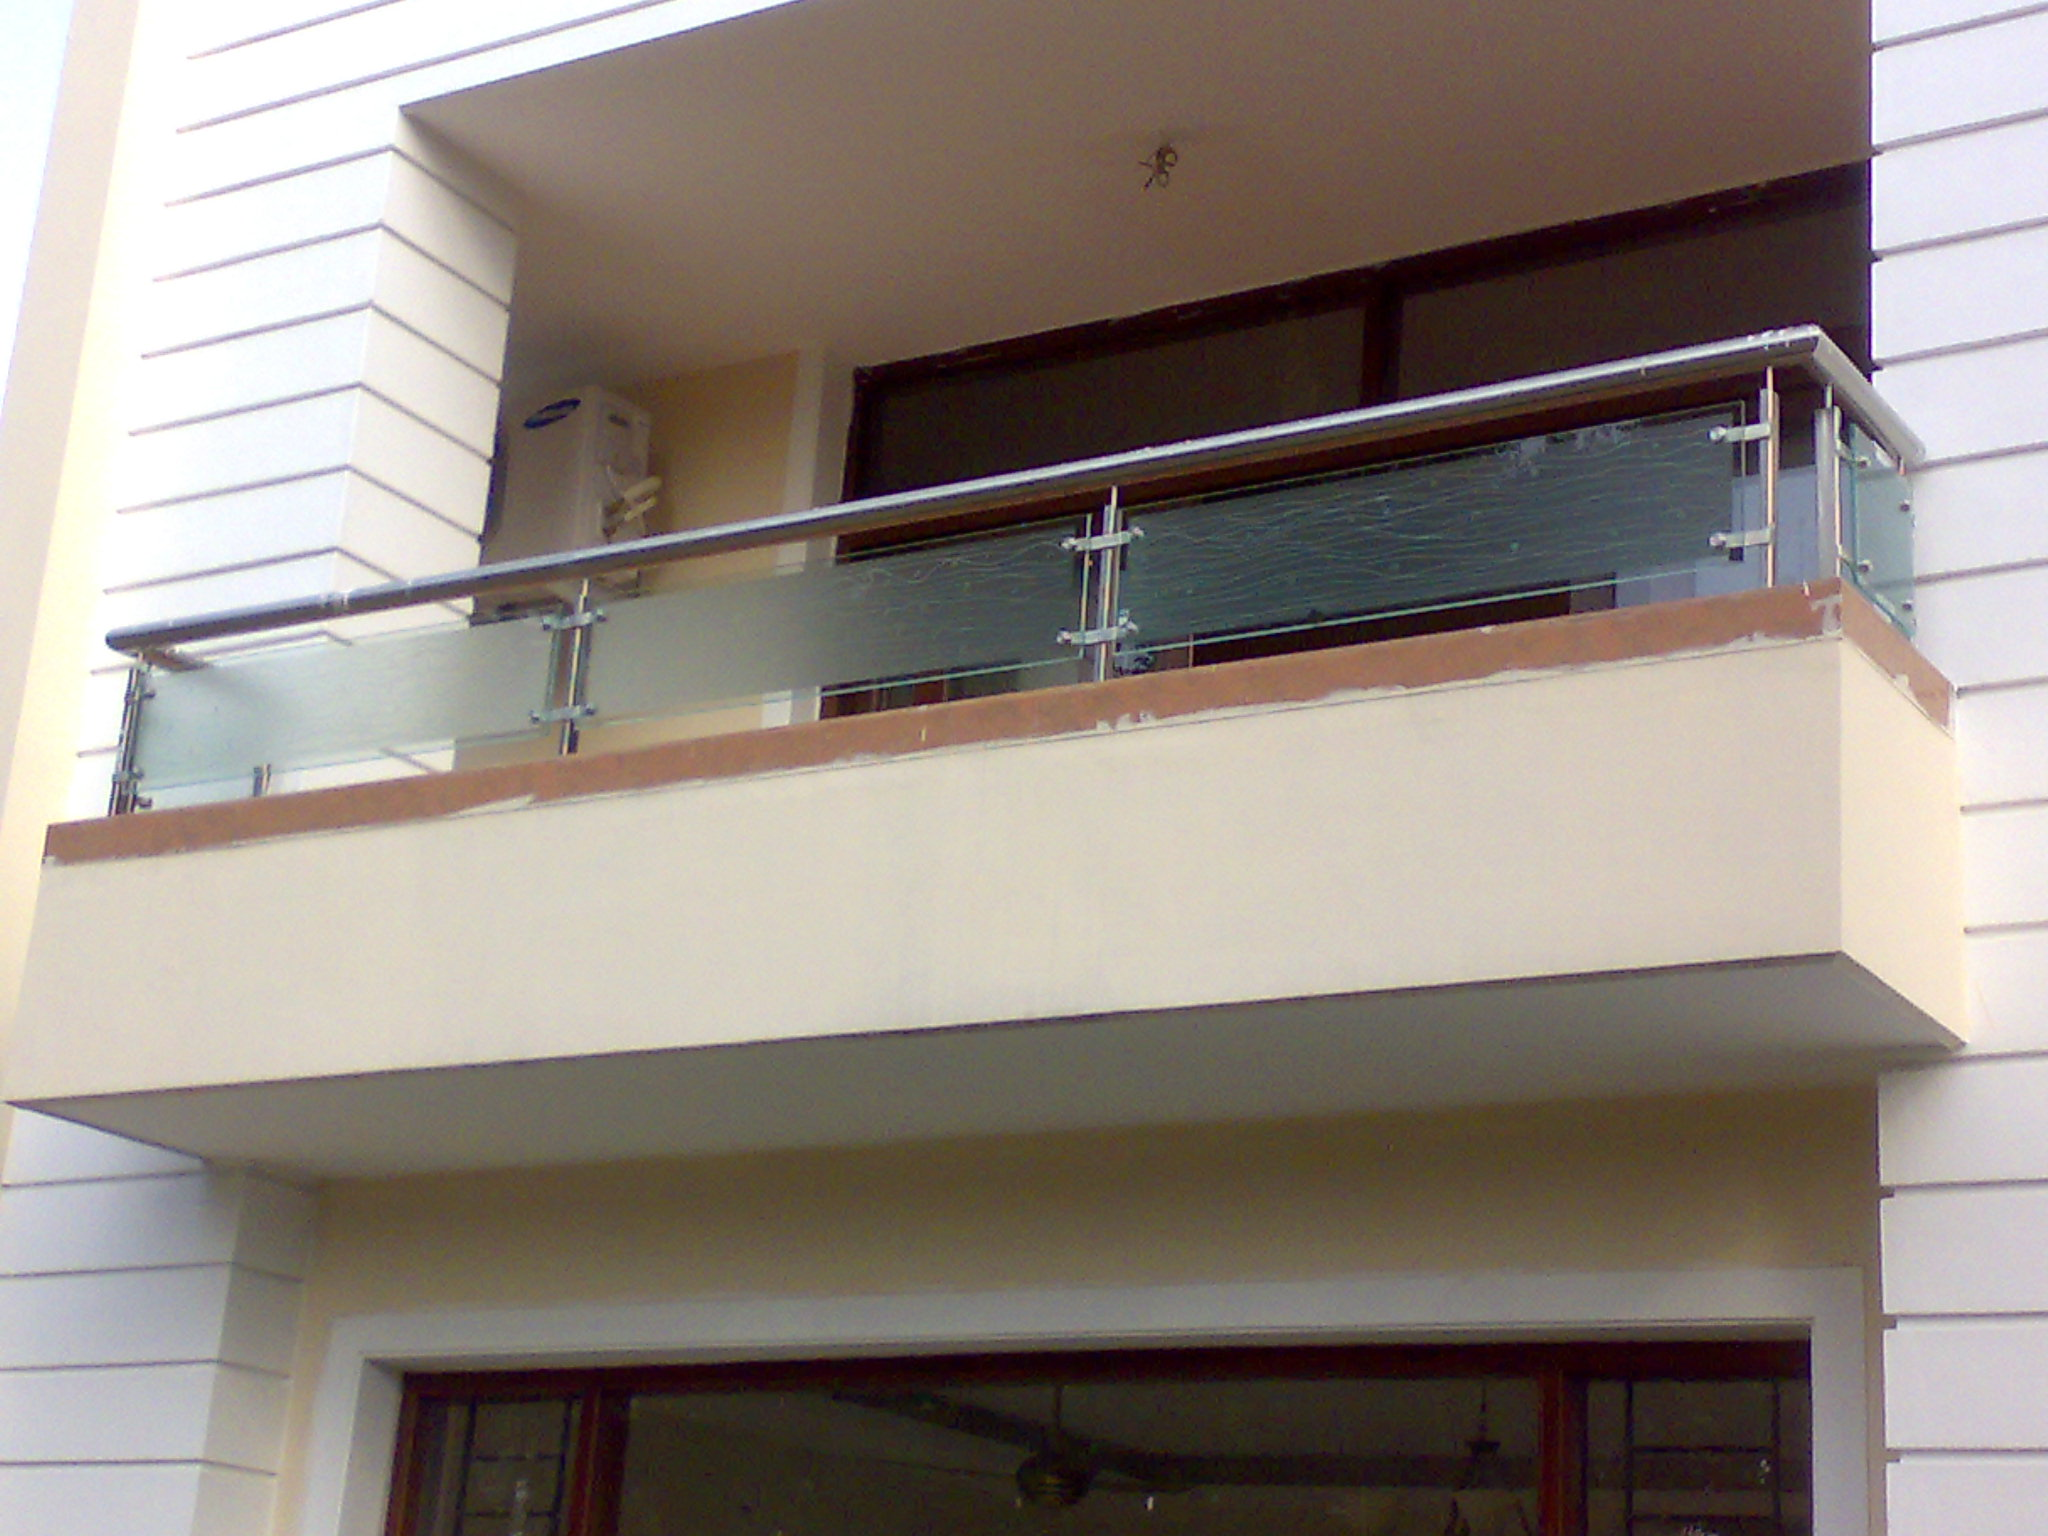 Products buy stainless steel glass railing from aay emm for Glass balcony railing